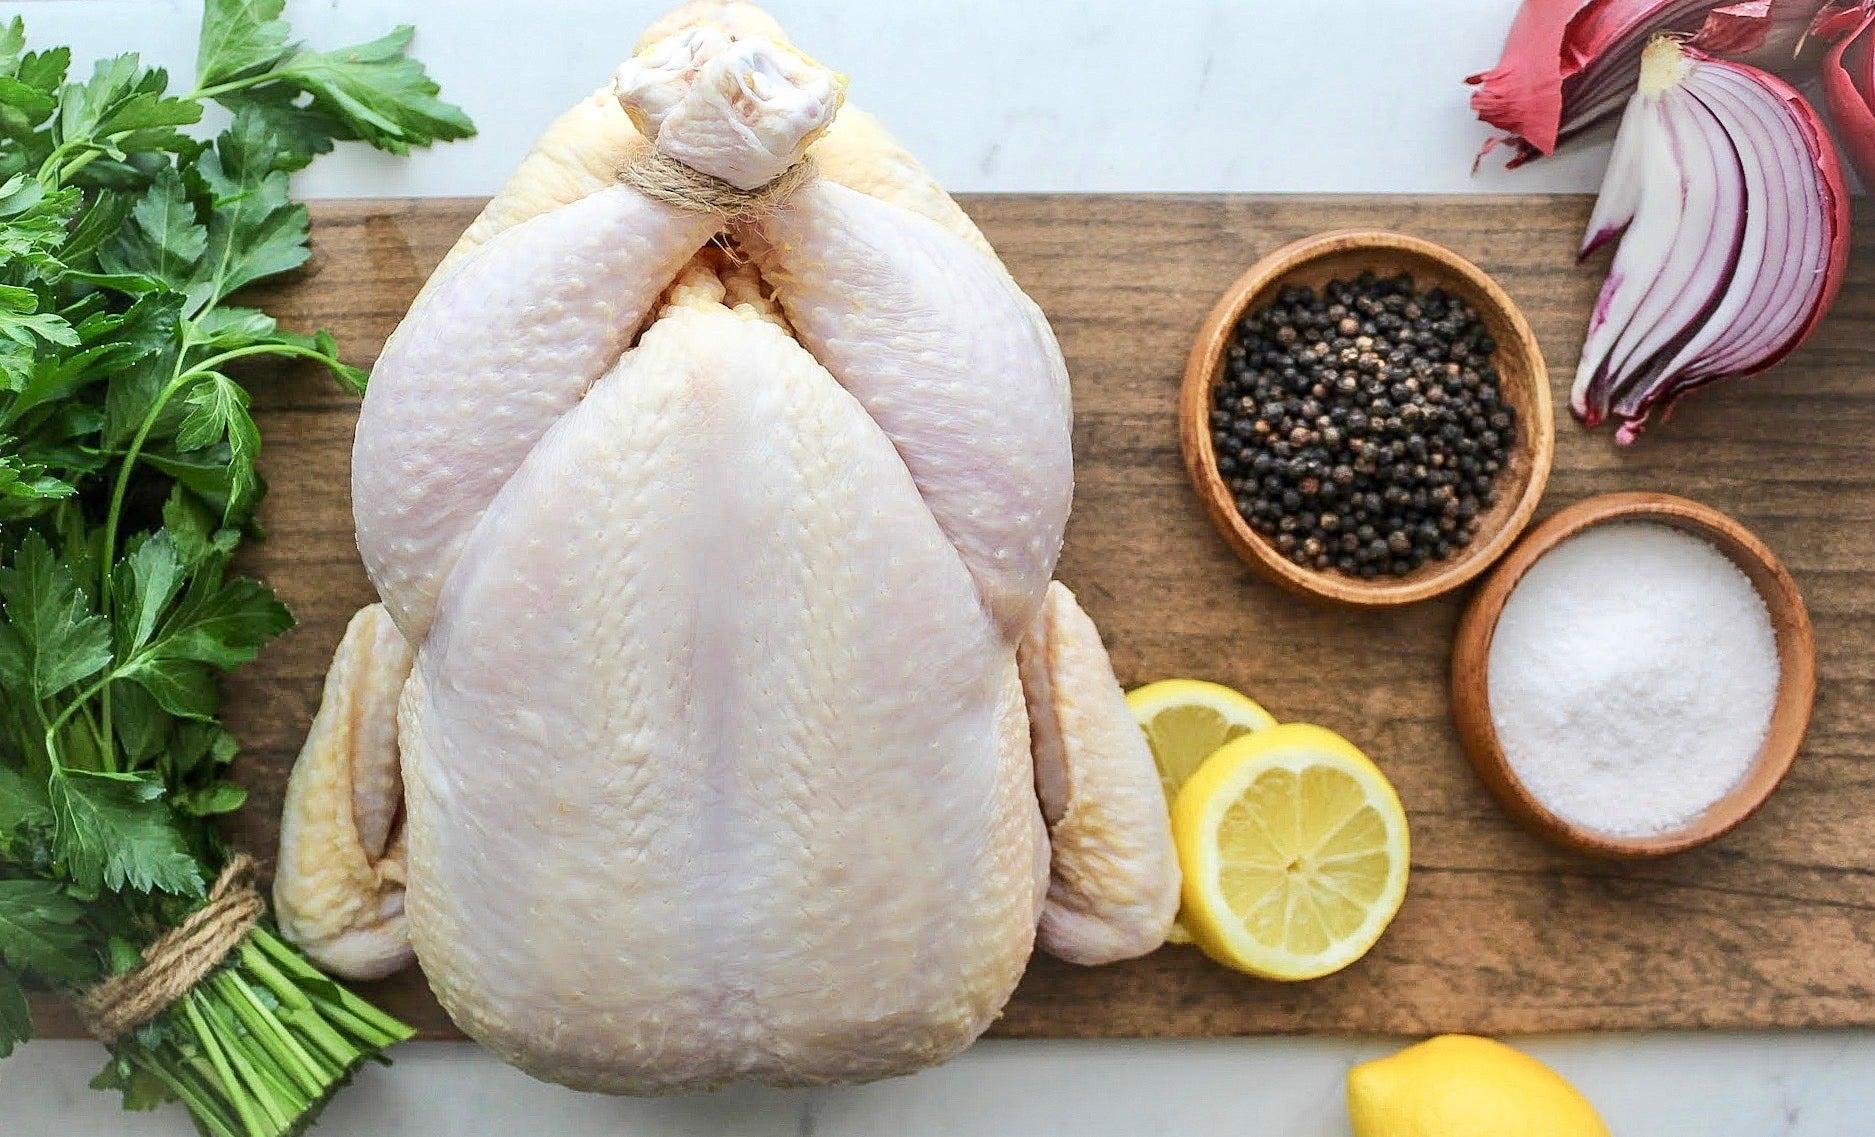 Alabama Organic Whole Pastured Chicken. NON-GMO, NO Antibiotic, Soy Free Chicken